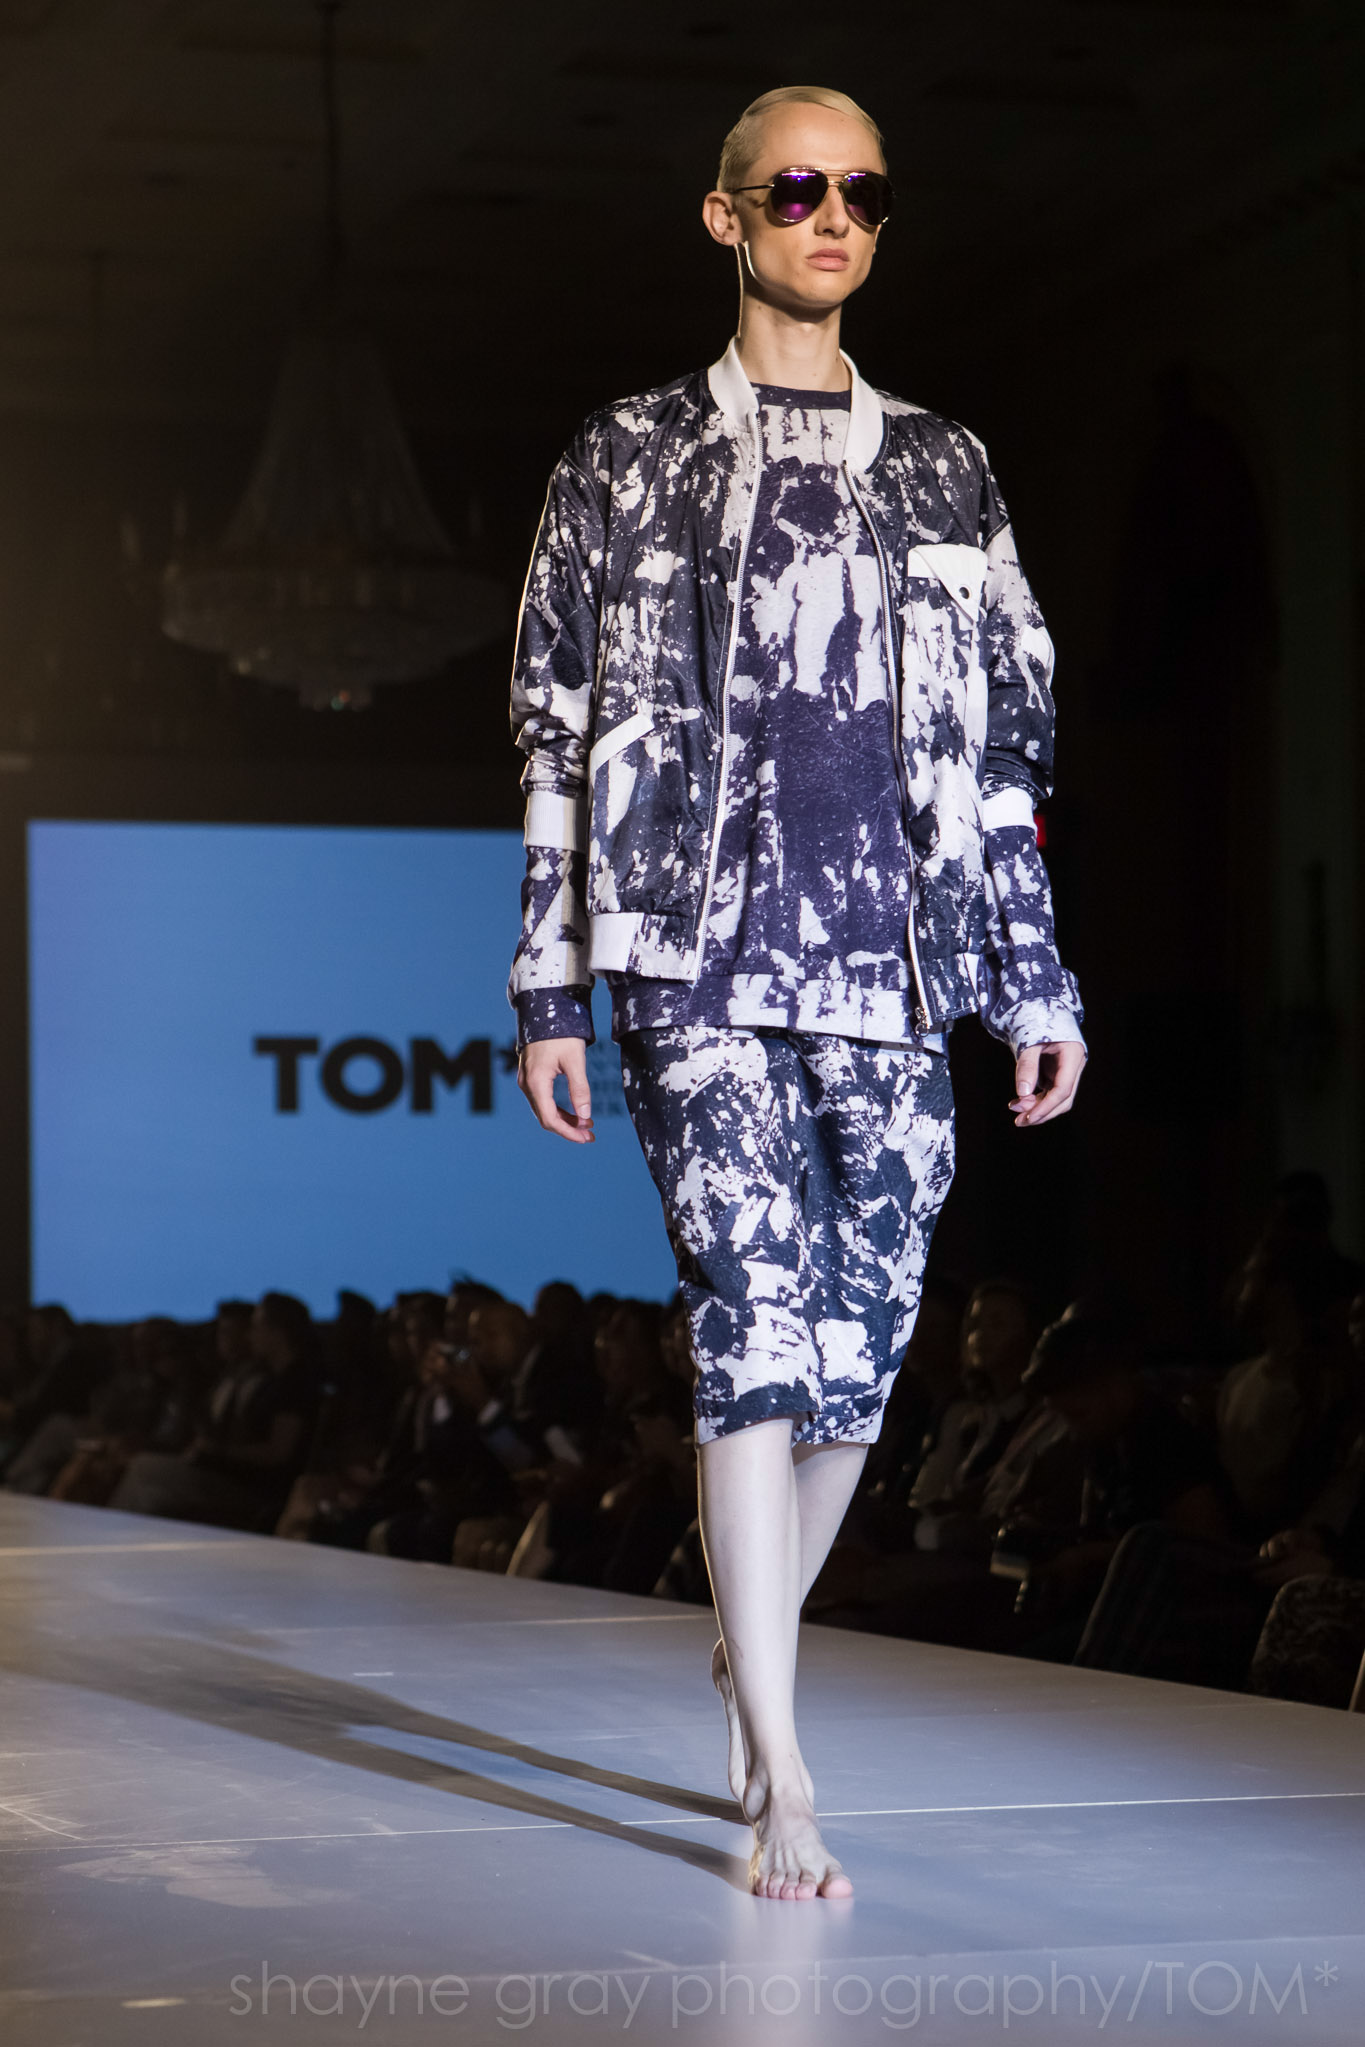 Shayne-Gray-Toronto-men's-fashion_week-TOM-tothem-6917.jpg